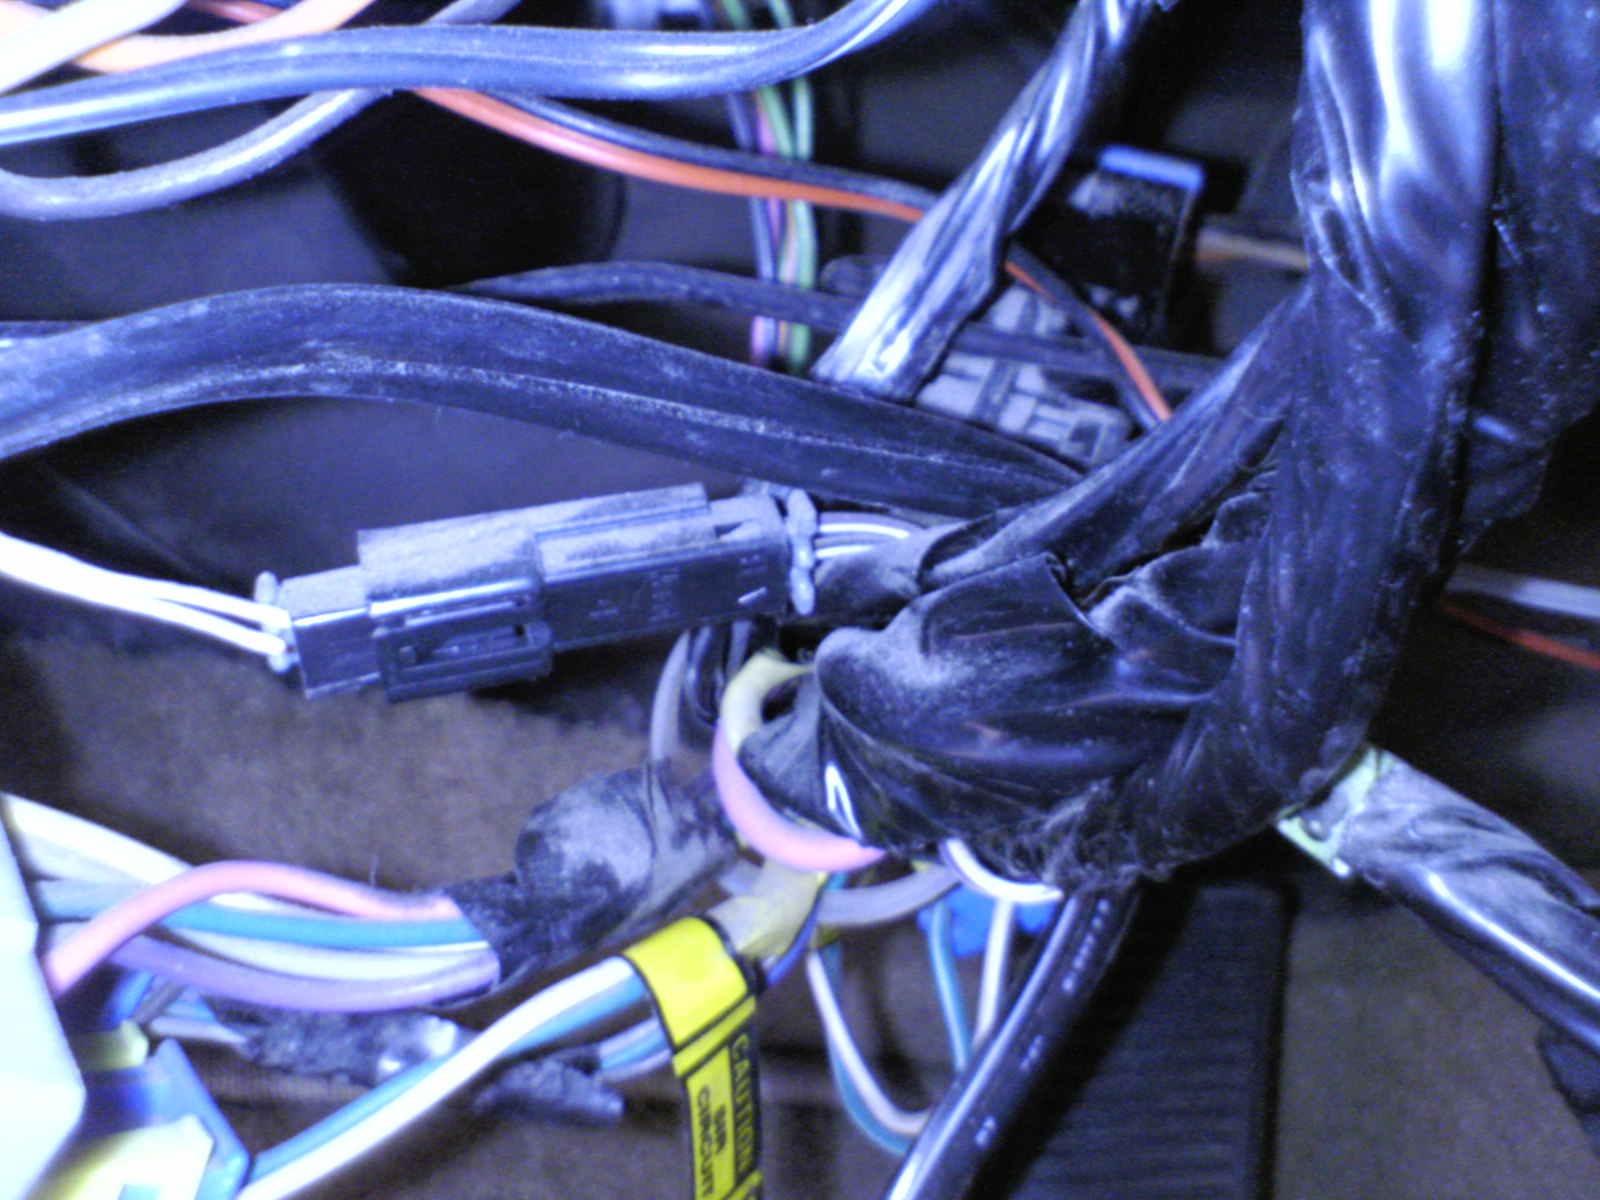 1995 caprice twilight sentinel install install the two wires from the twilight sentinel switch and the one from the headlight switch into the ip harness white connector matching the colors on the